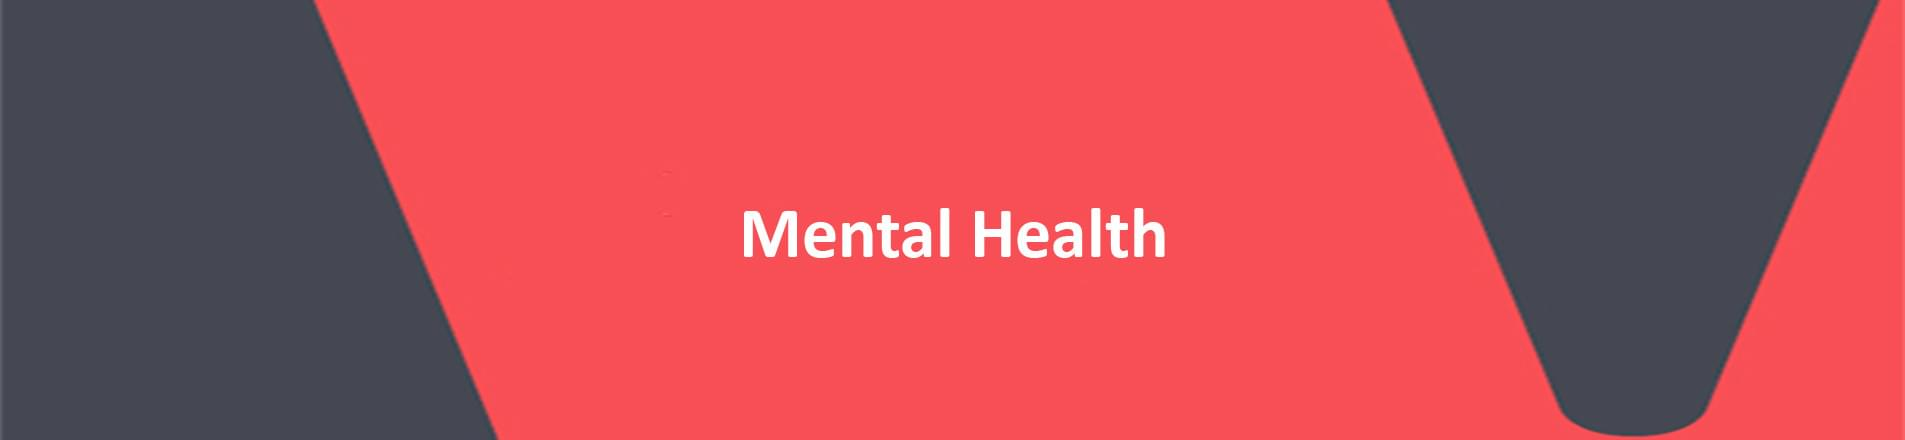 The words 'Mental Health' on a red VERCIDA background